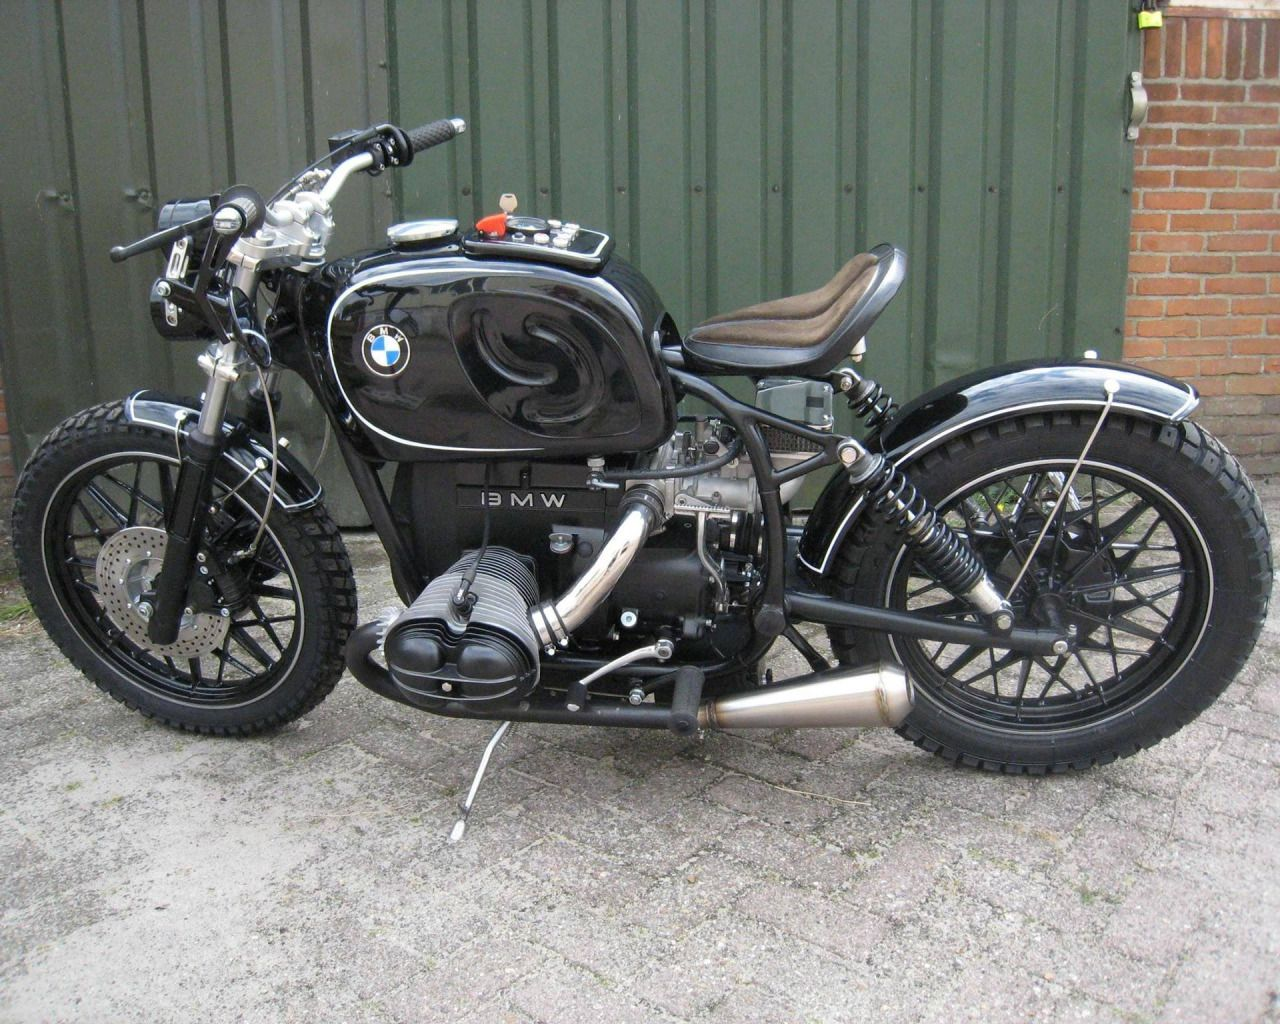 Source Theclubhousecafe Con Imagenes Bmw Cafe Racer Bmw